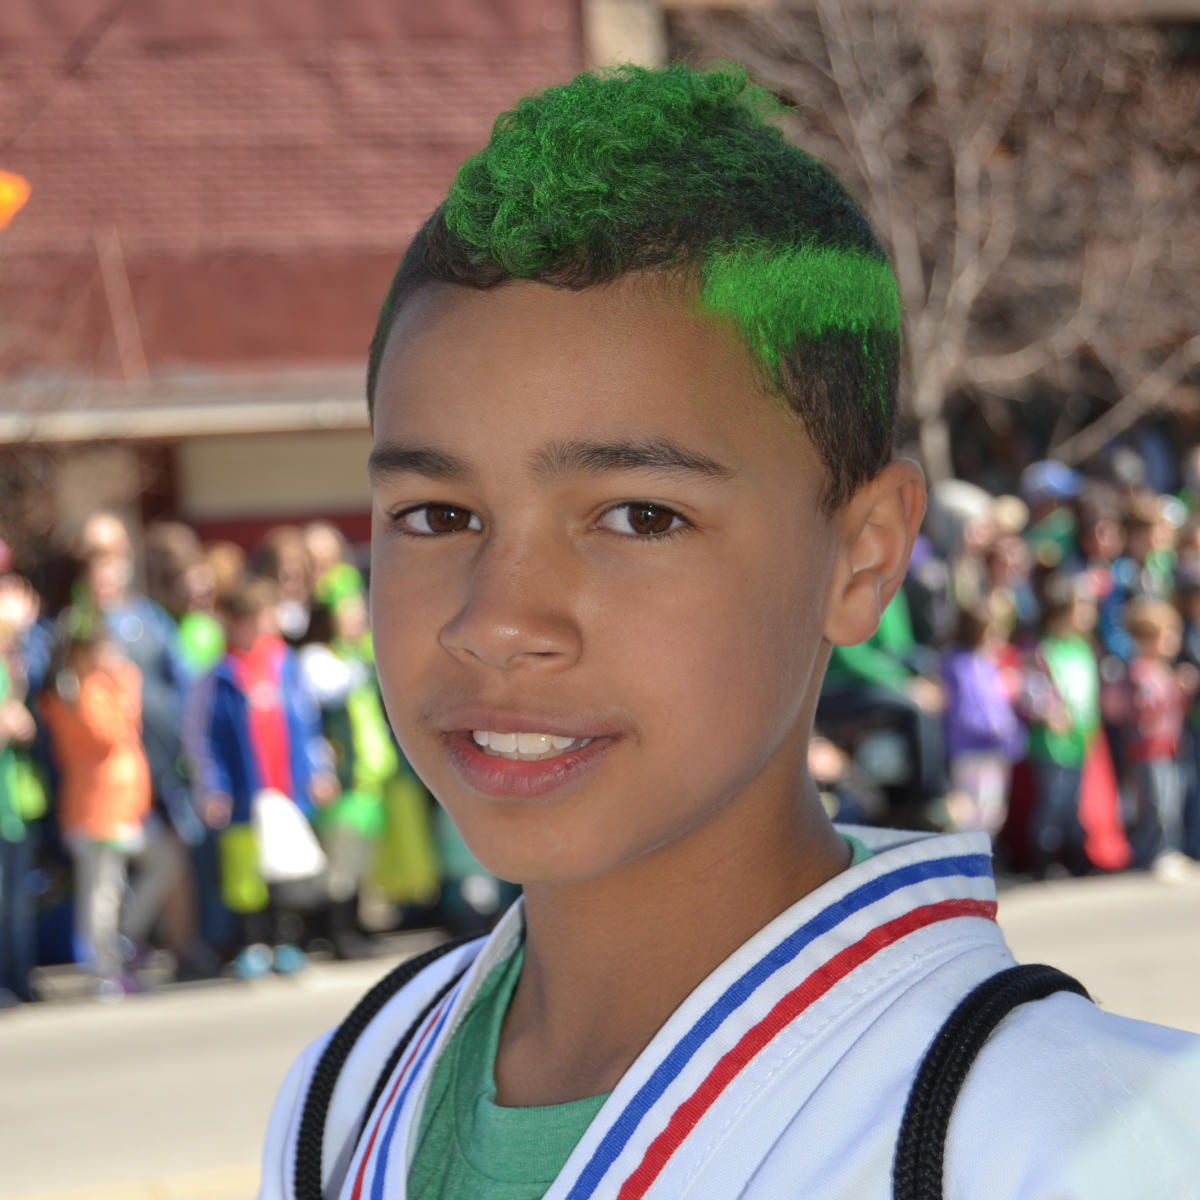 St. Patrick's Day Parade boy with green hair